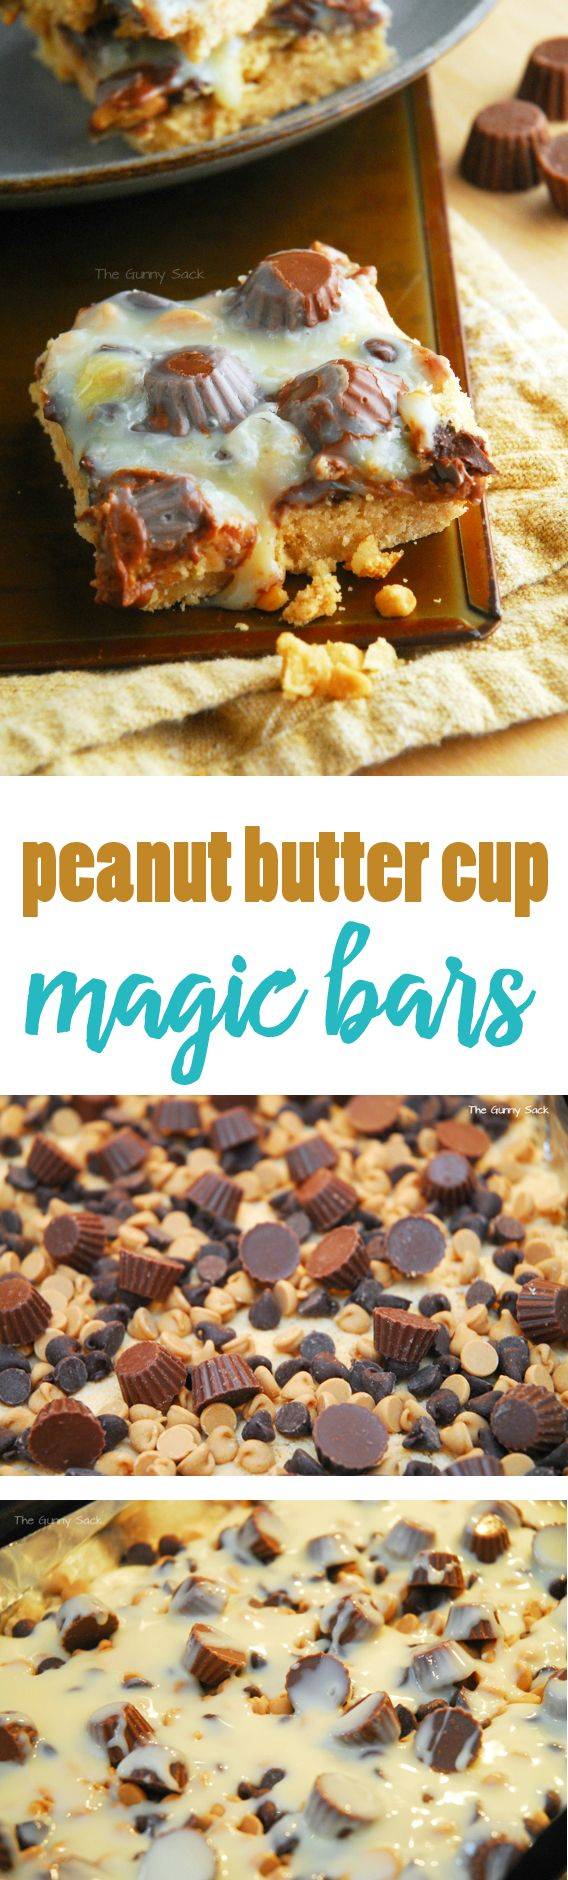 Peanut Butter Cup Magic Bars Recipe